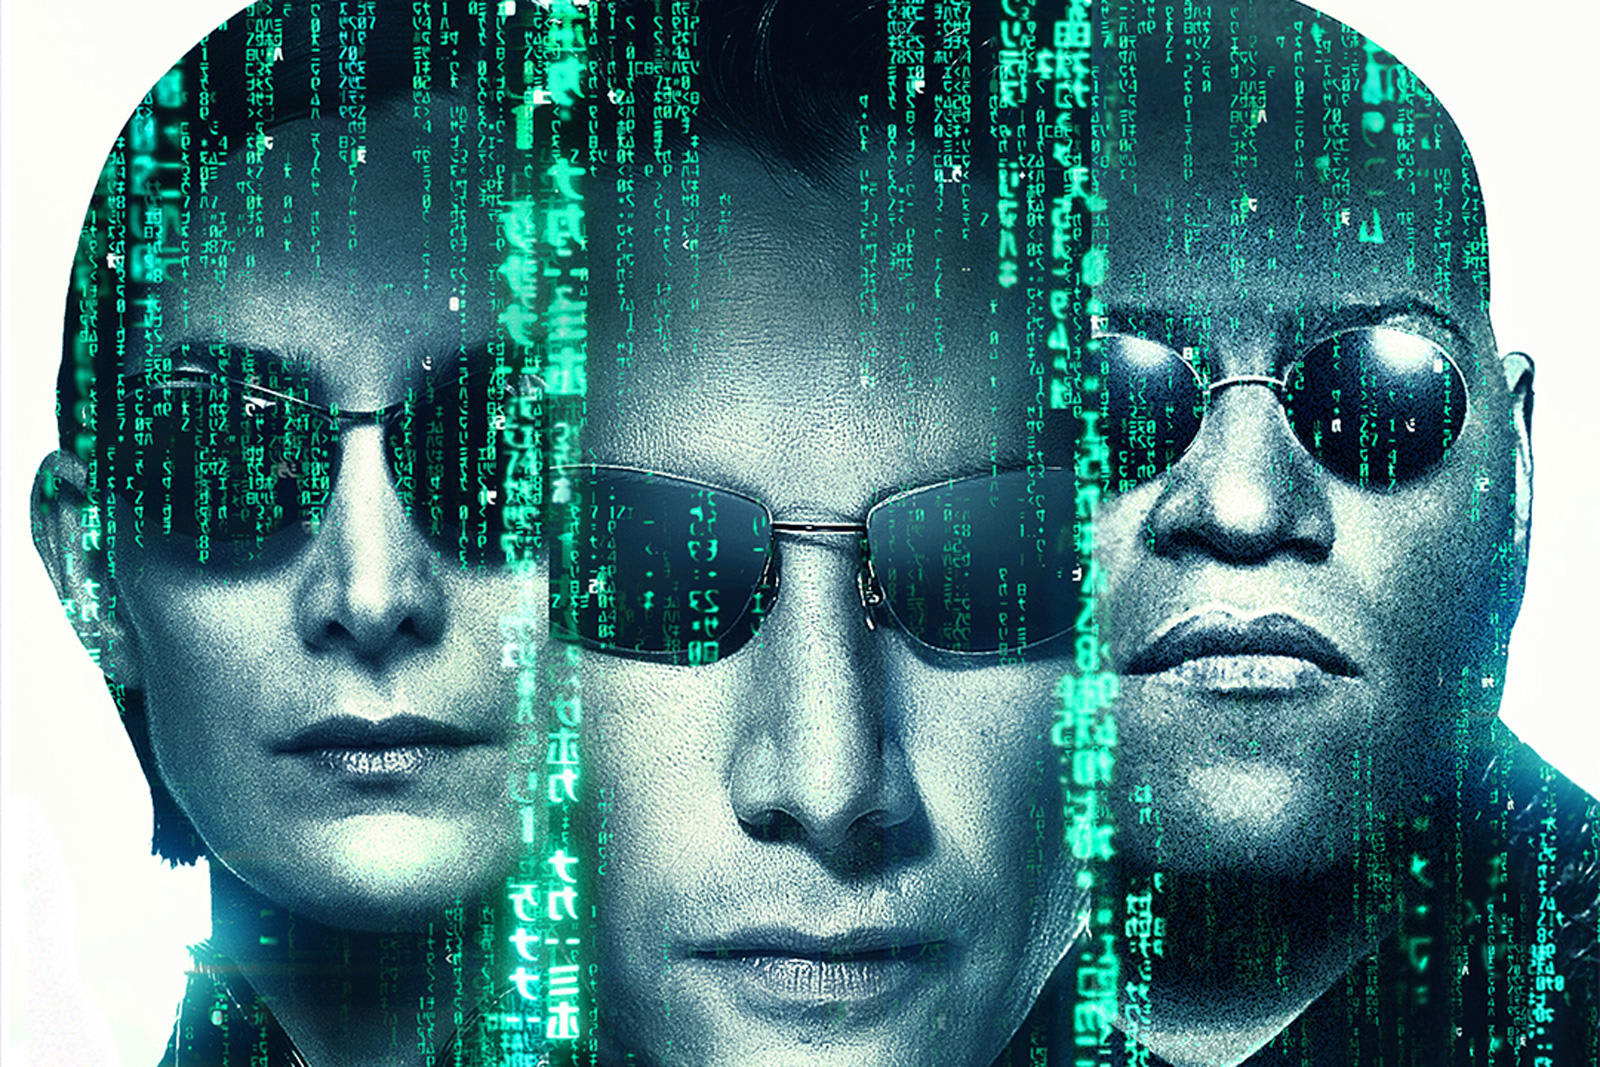 The Matrix' returns to theaters August 30th with Dolby Vision and Atmos